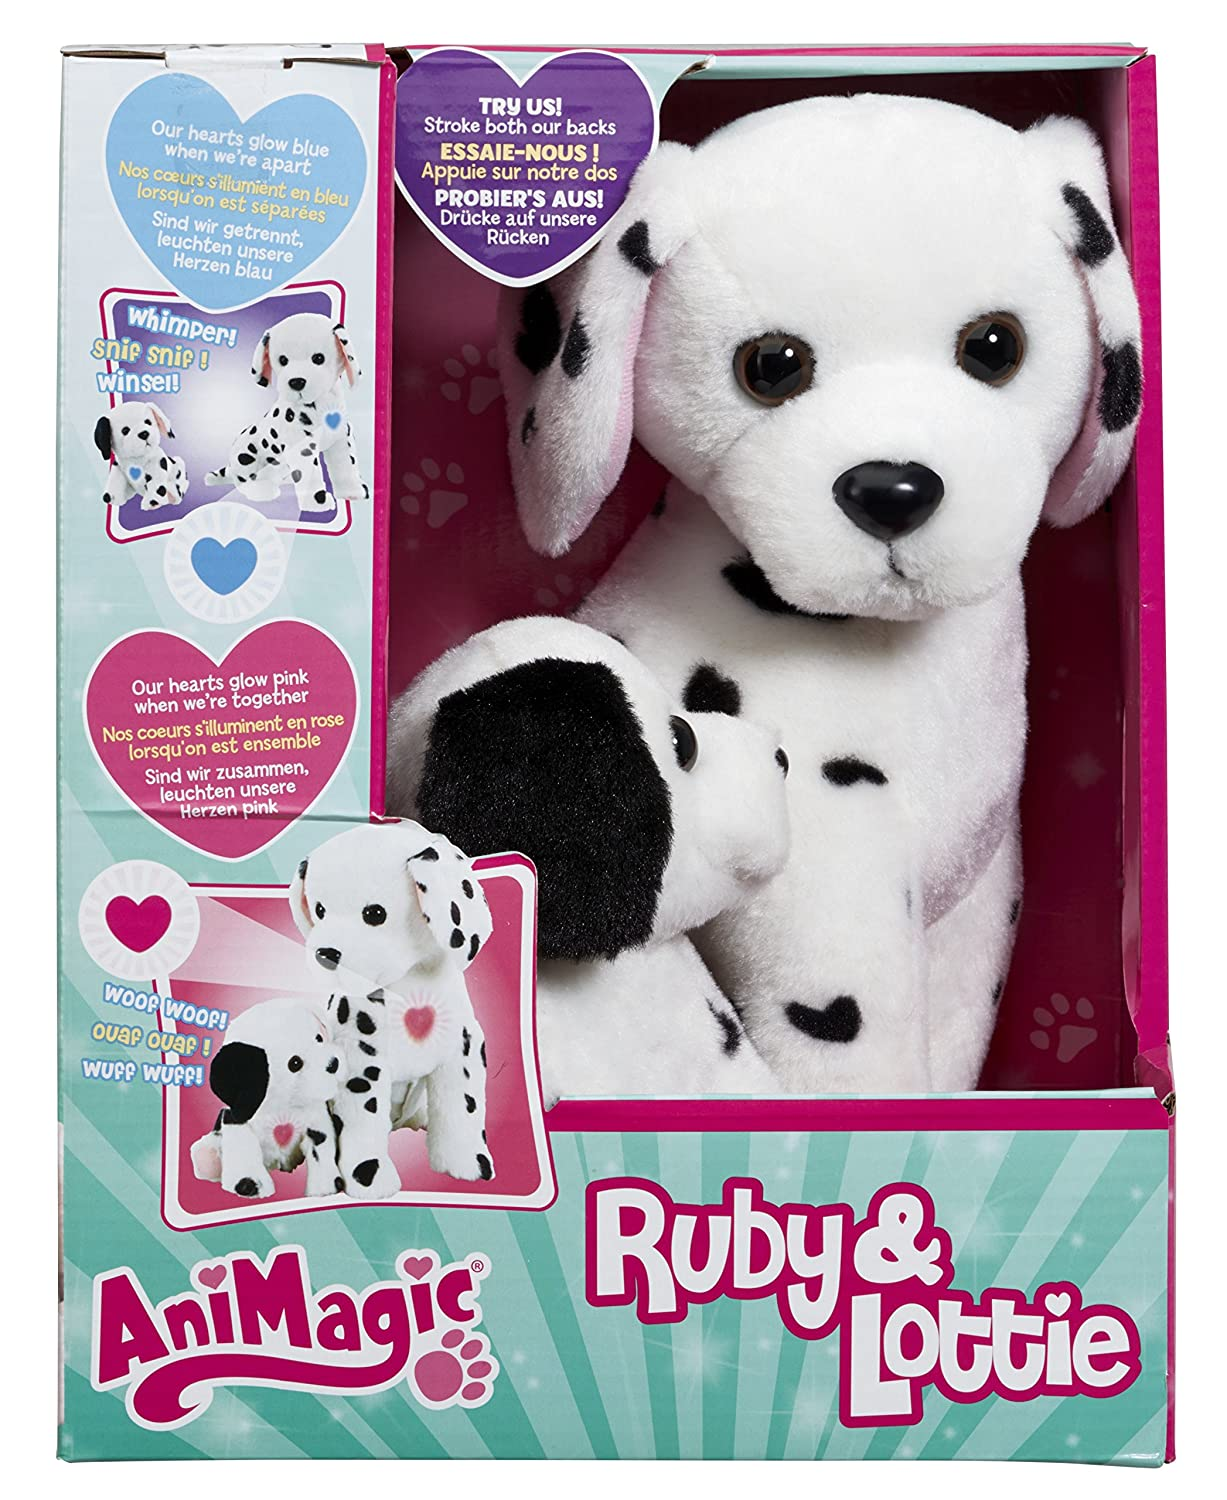 Vivid Imaginations Peluche interattivi Animagic Ruby & Lottie, mamma e cucciolo dalmata 31189.43